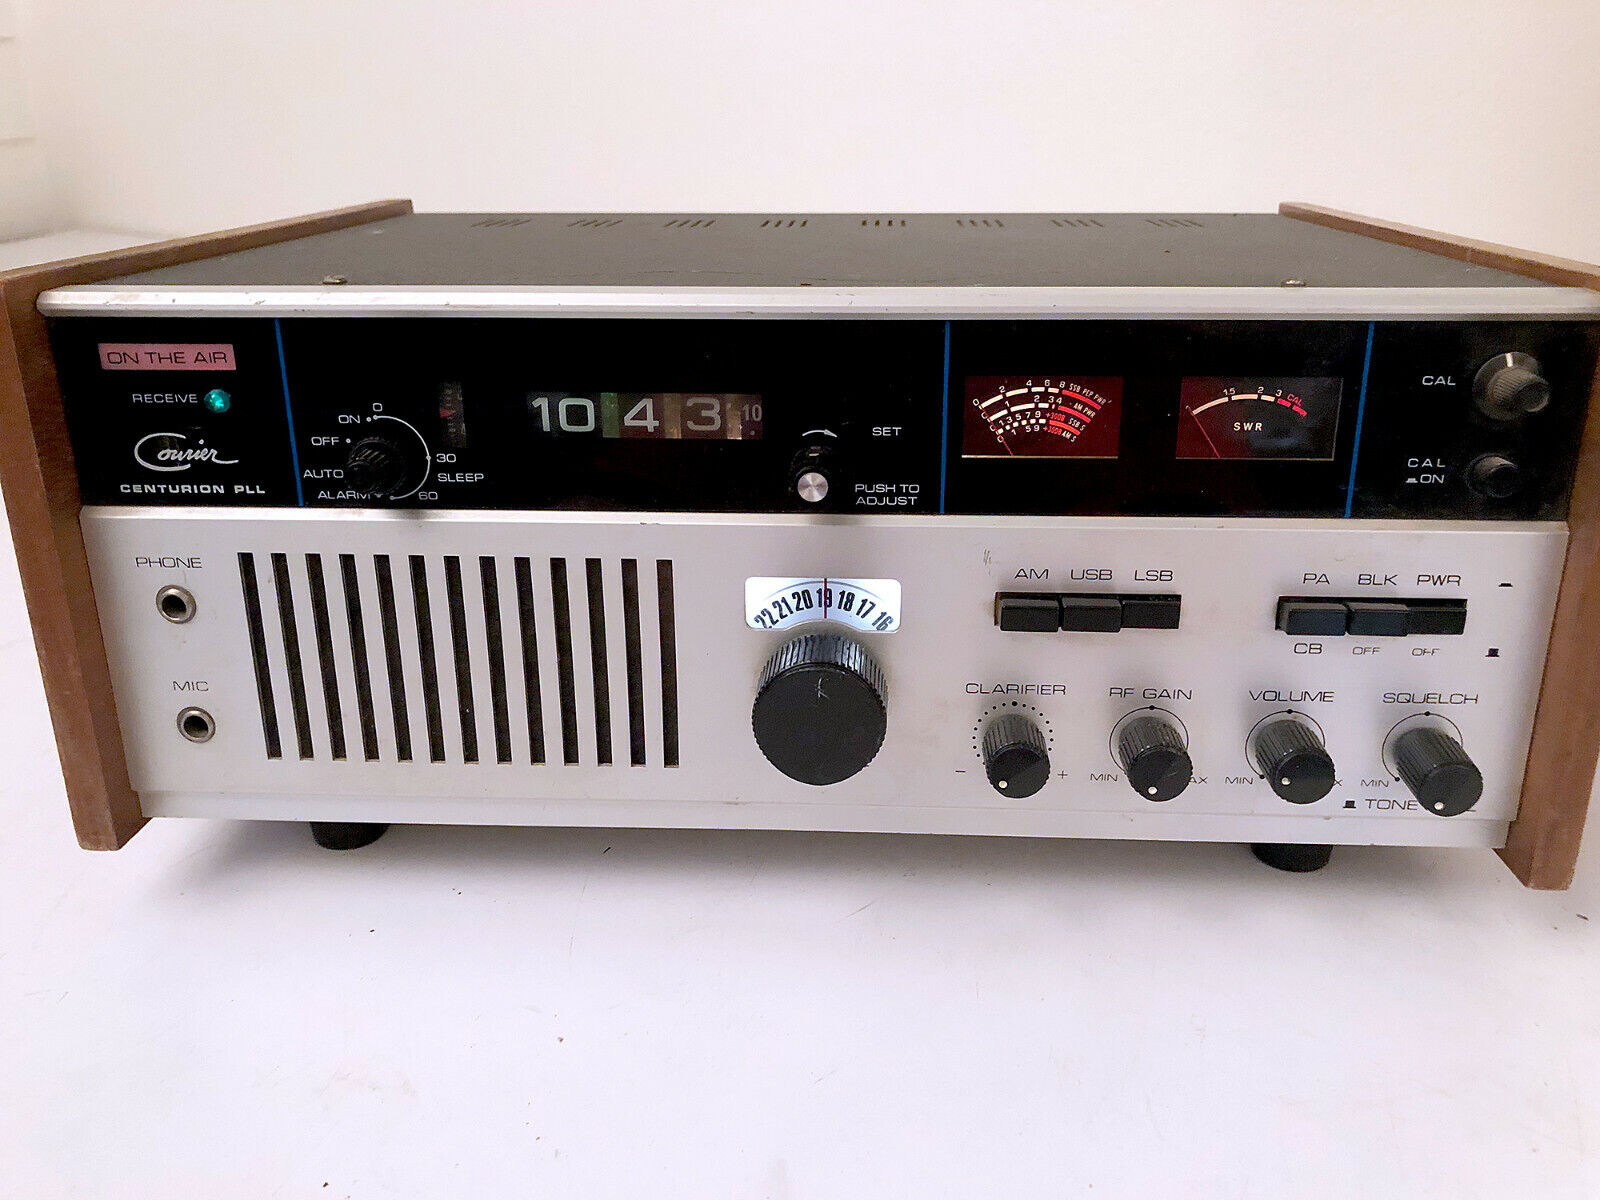 Vintage 1980's Courier Centurion PLL CB Radio Base Station - EXCELLENT!!!. Available Now for 299.99